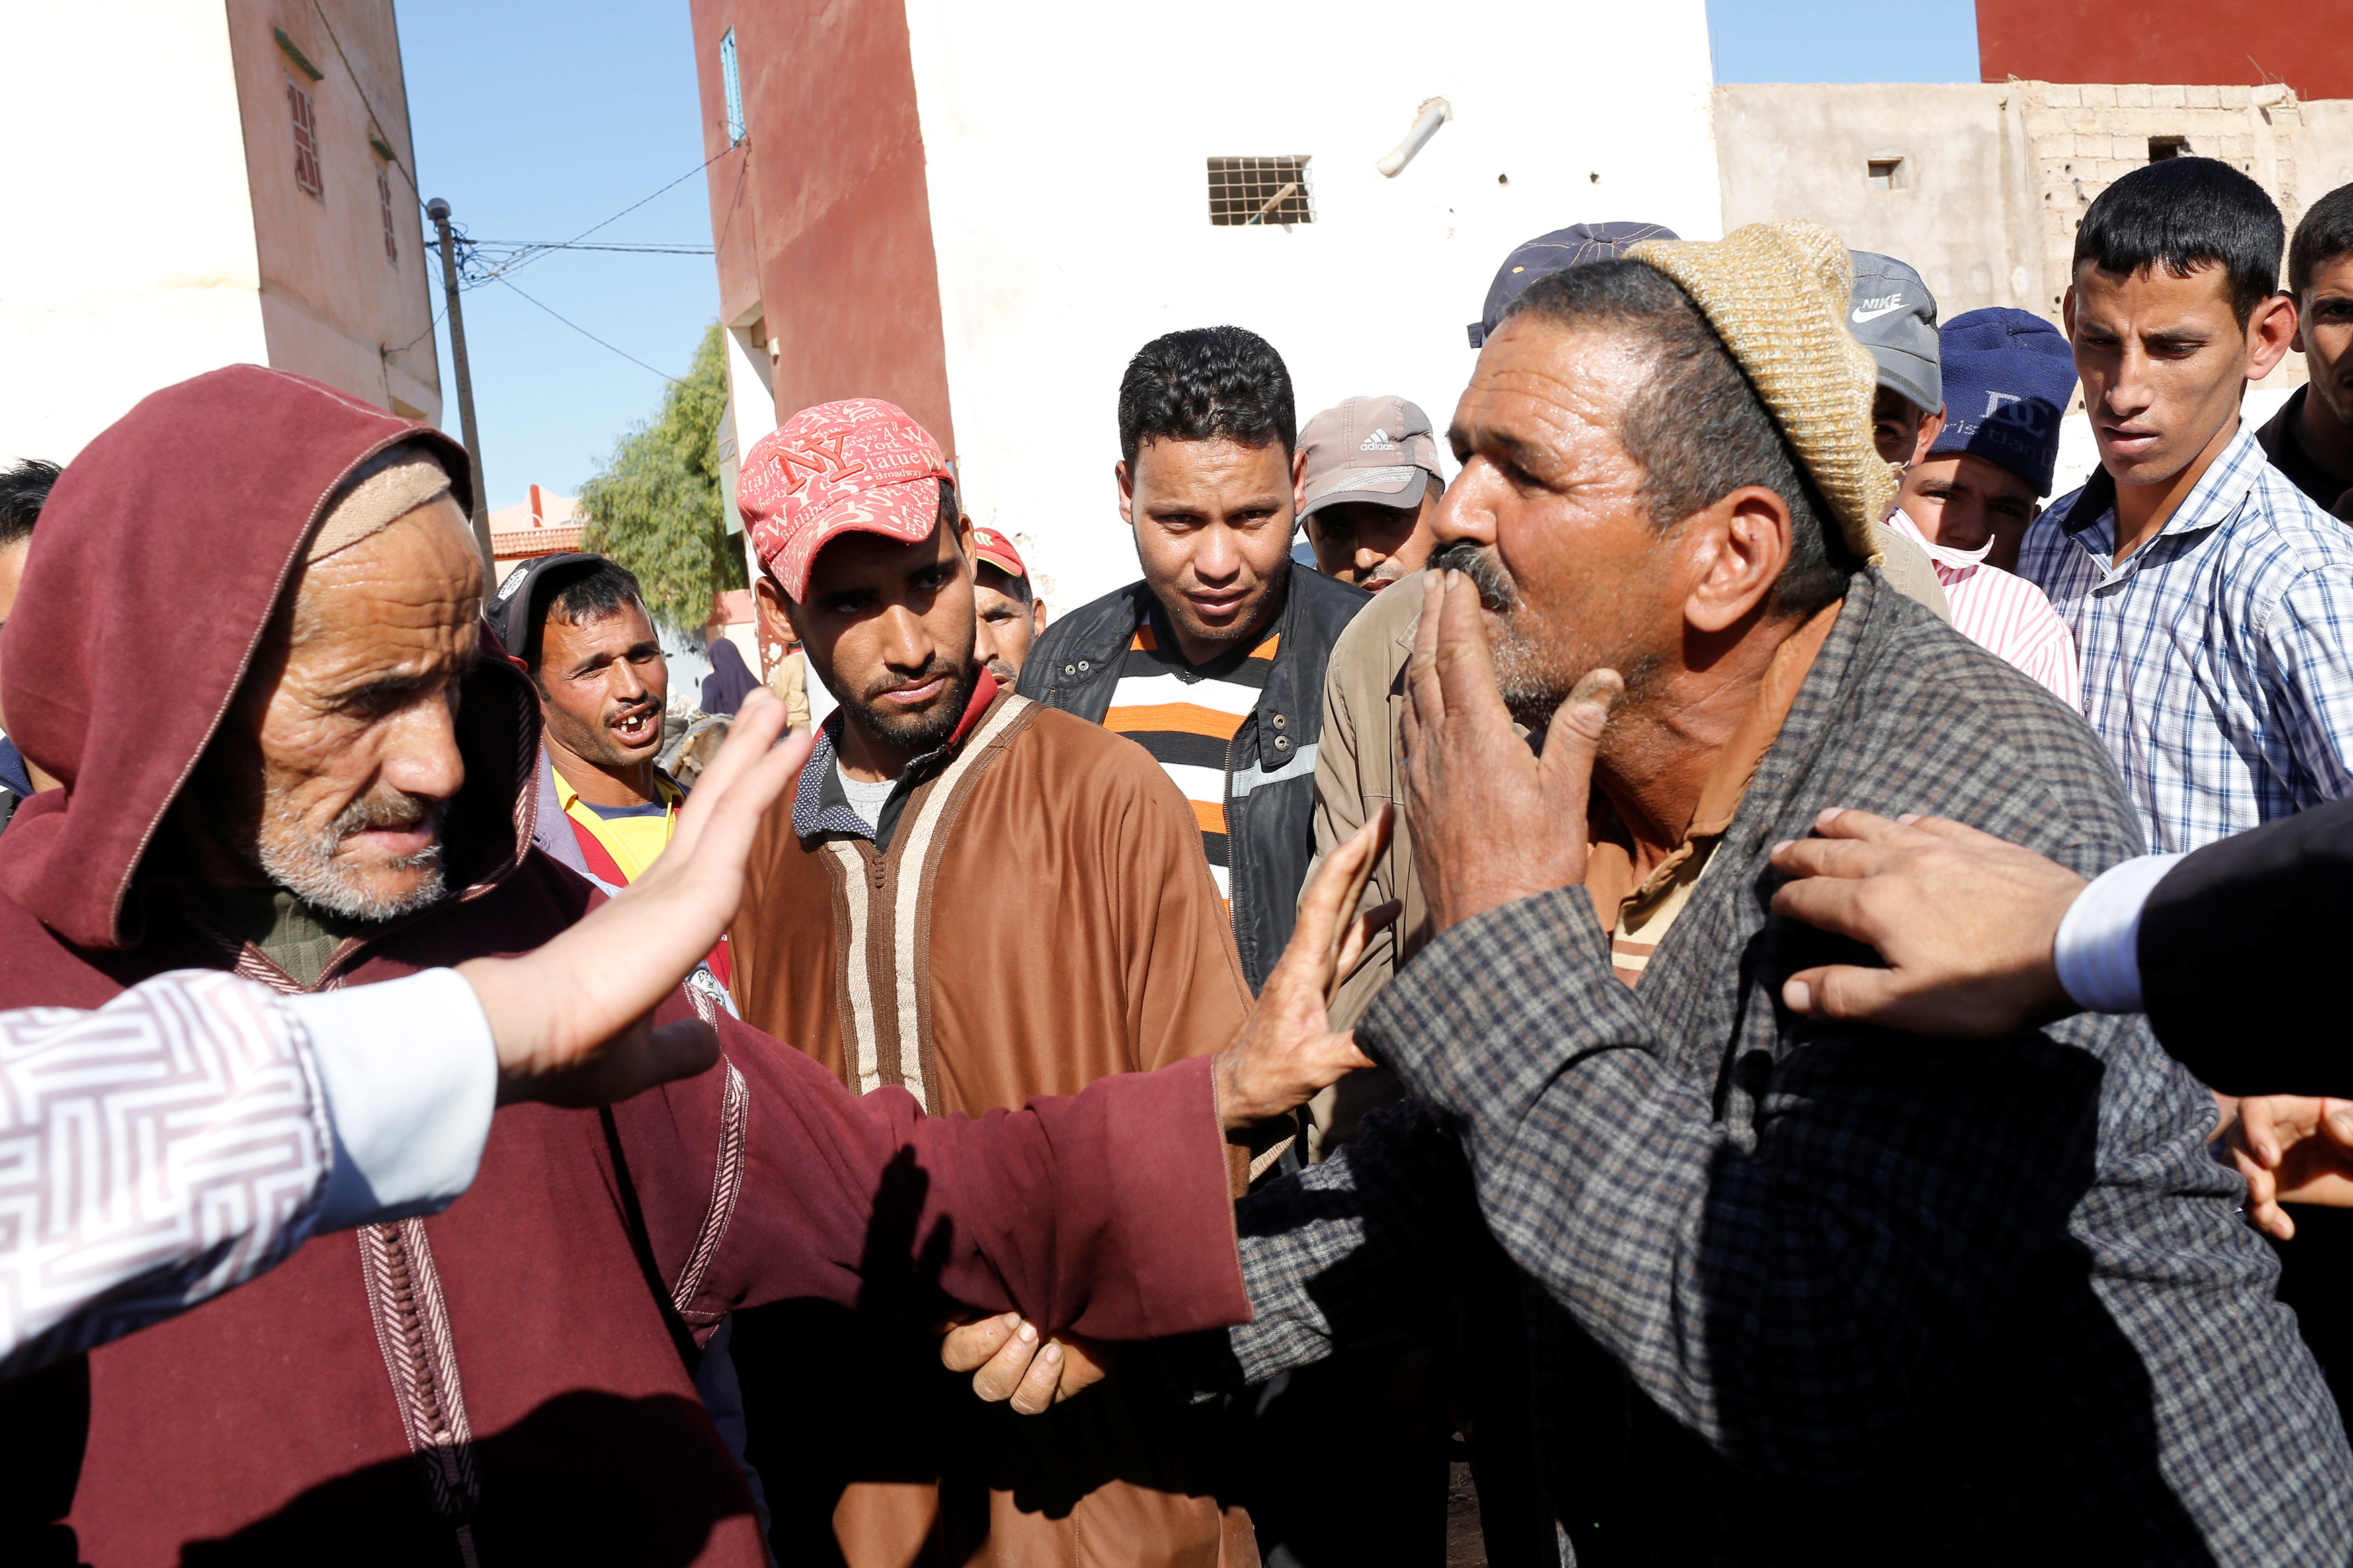 People gather at the place where 15 people were killed when a stampede broke out in the southwestern Moroccan town of Sidi Boulaalam as food aid was being distributed in a market, in Sidi Boullaalam, Morocco November 20, 2017.